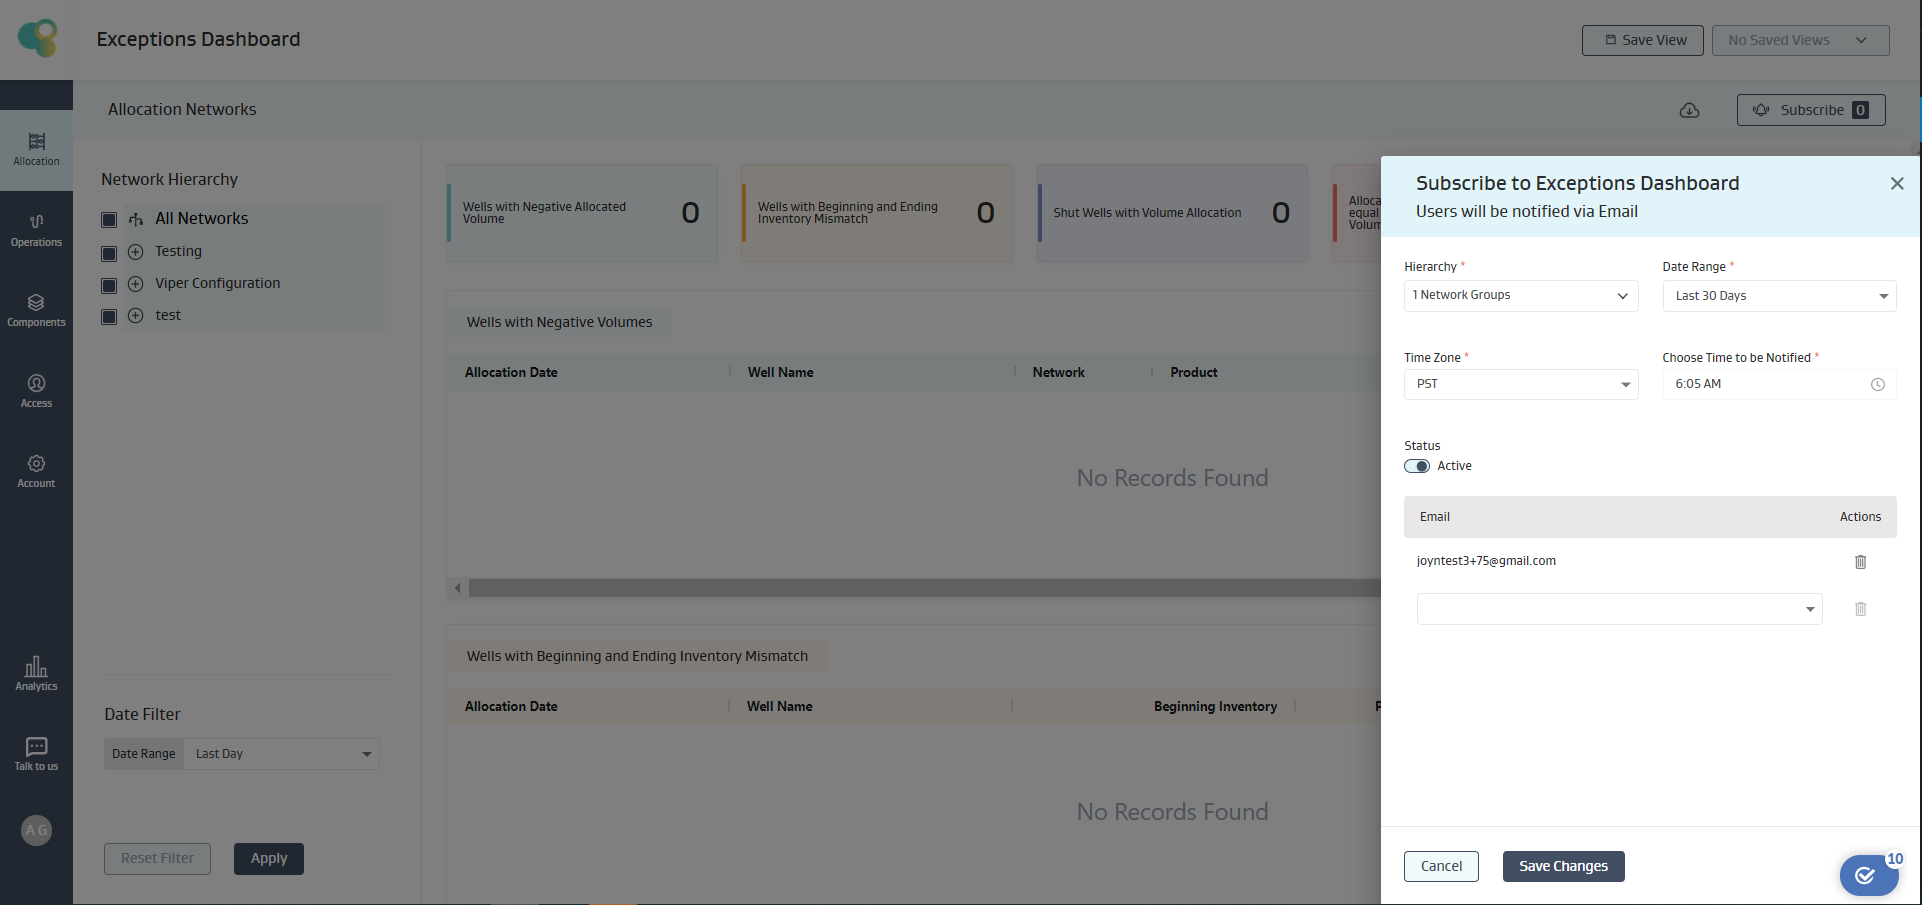 Activate Subscriptions to Exceptions Dashboard